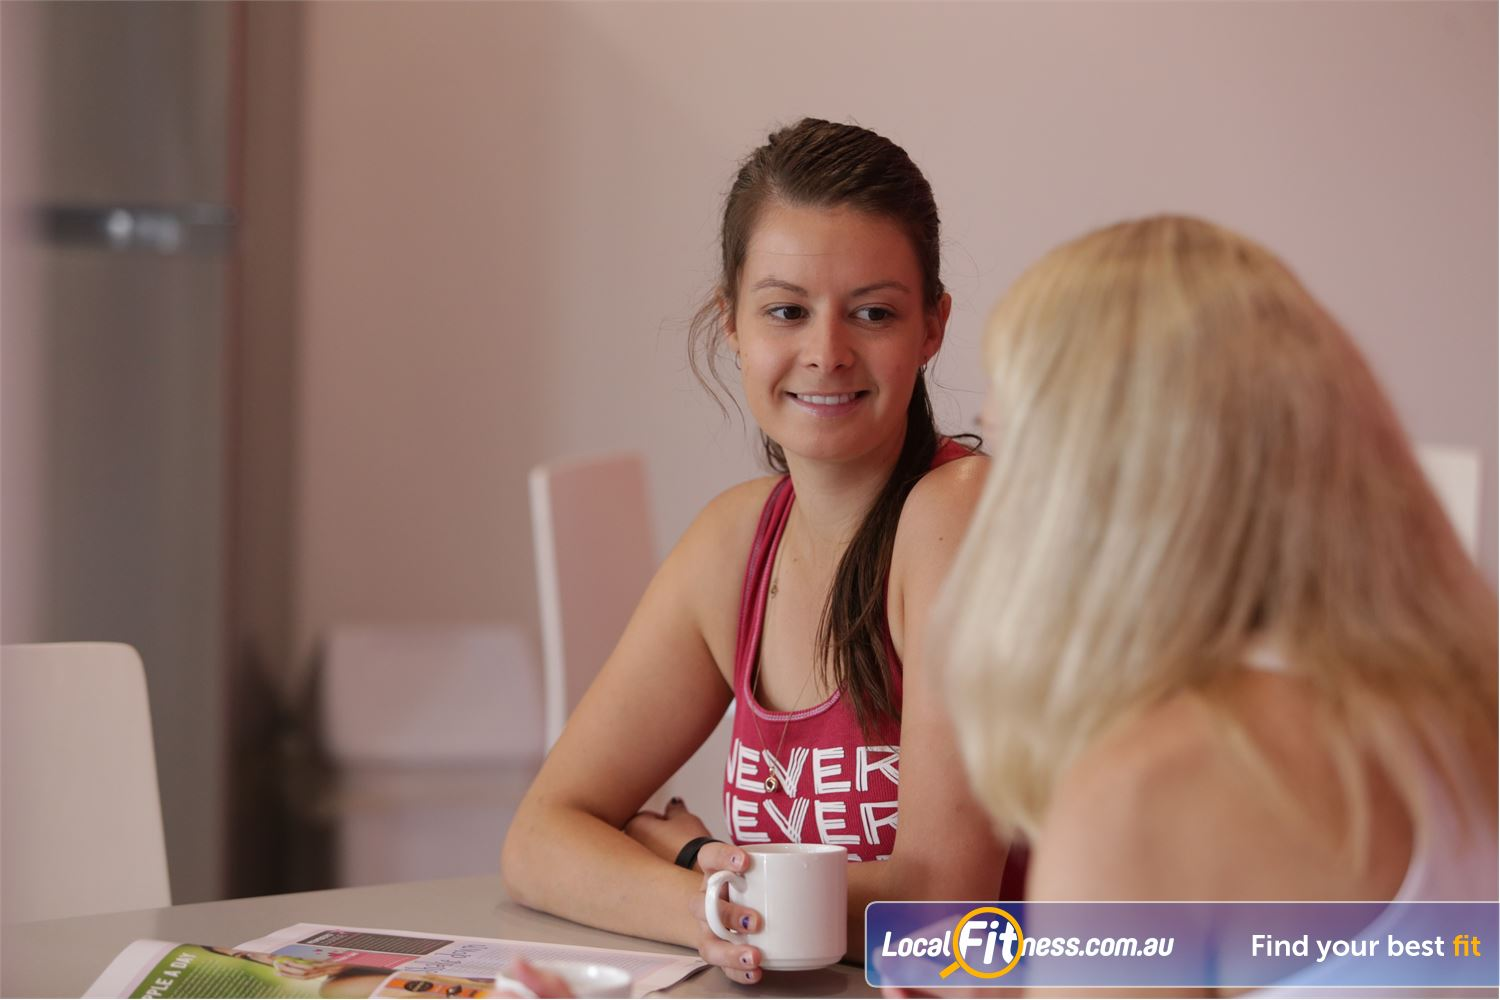 Fernwood Fitness Near Grahamvale Getto know our members in the members lounge.